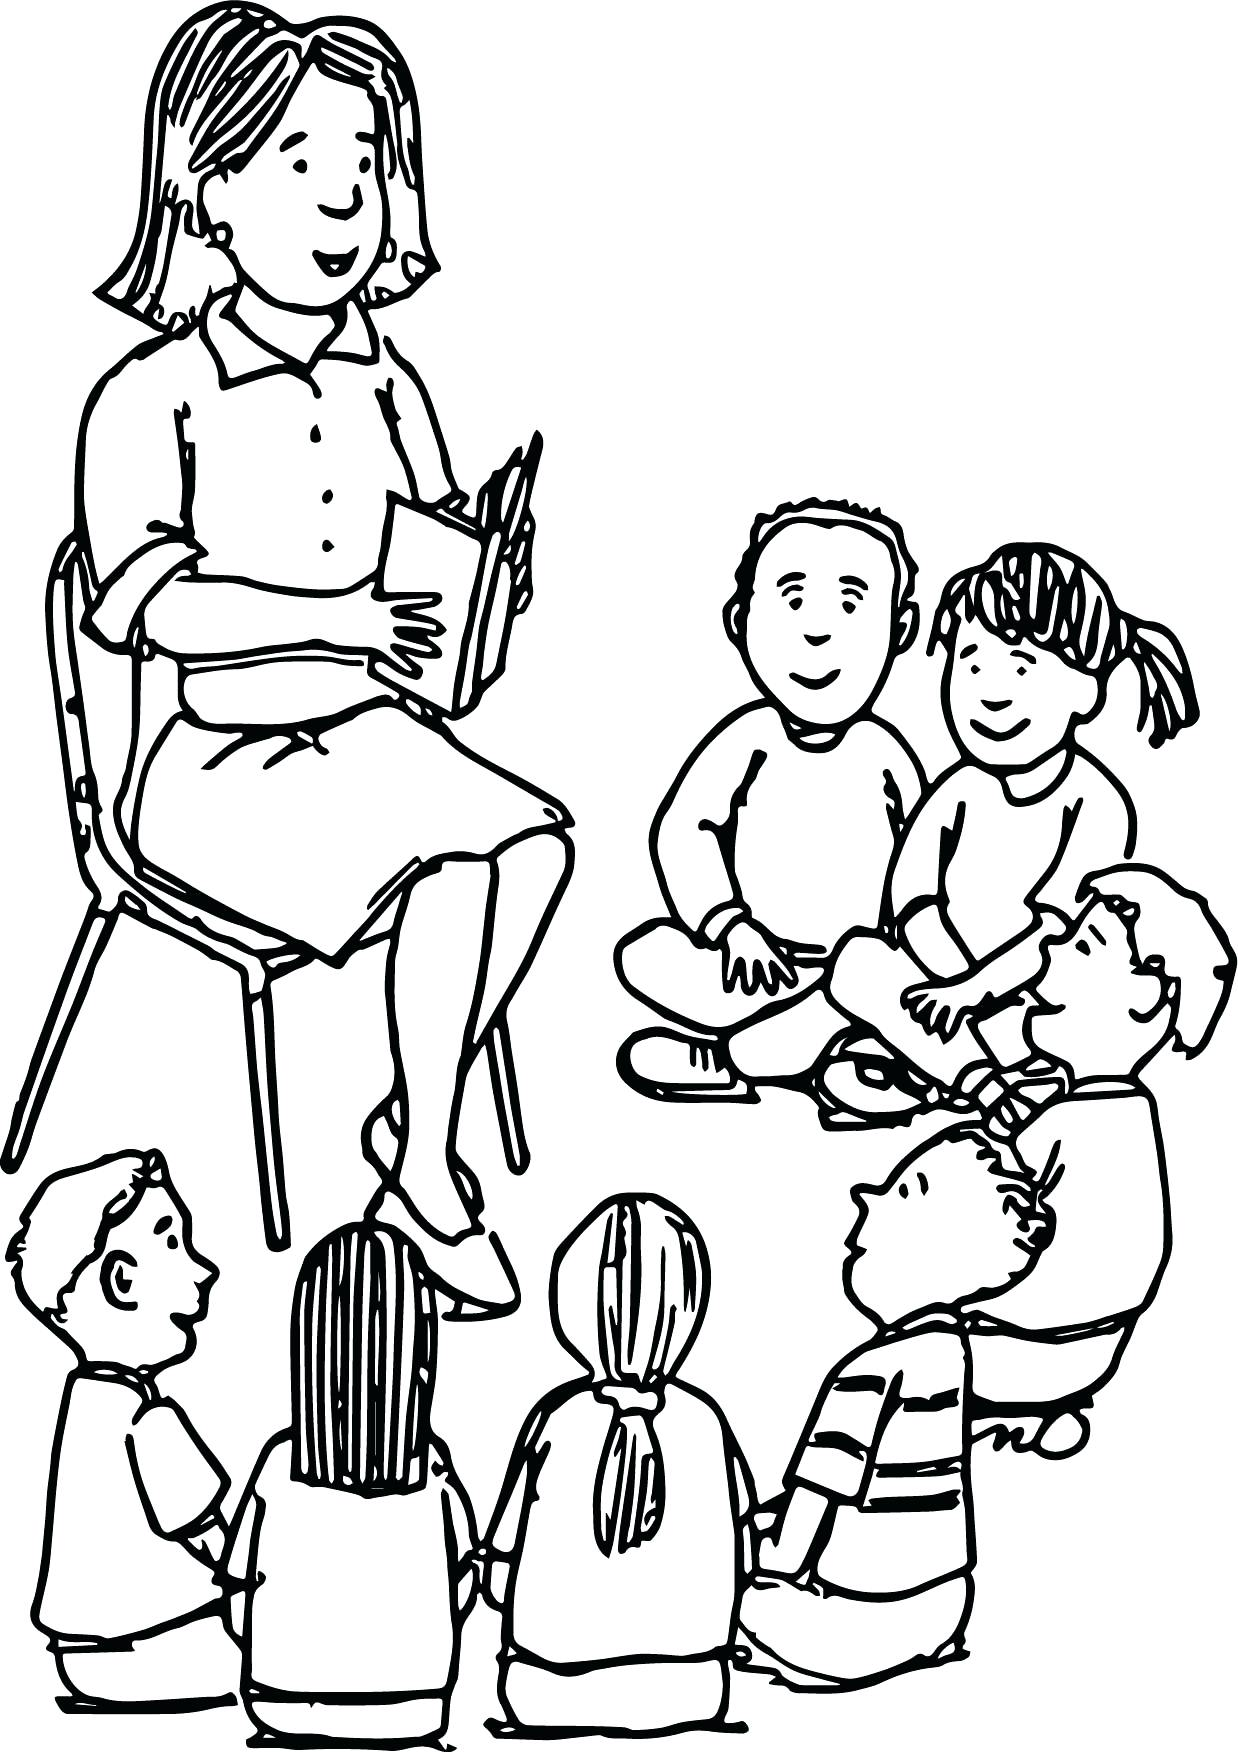 Teacher and student drawing at free for for Student coloring page